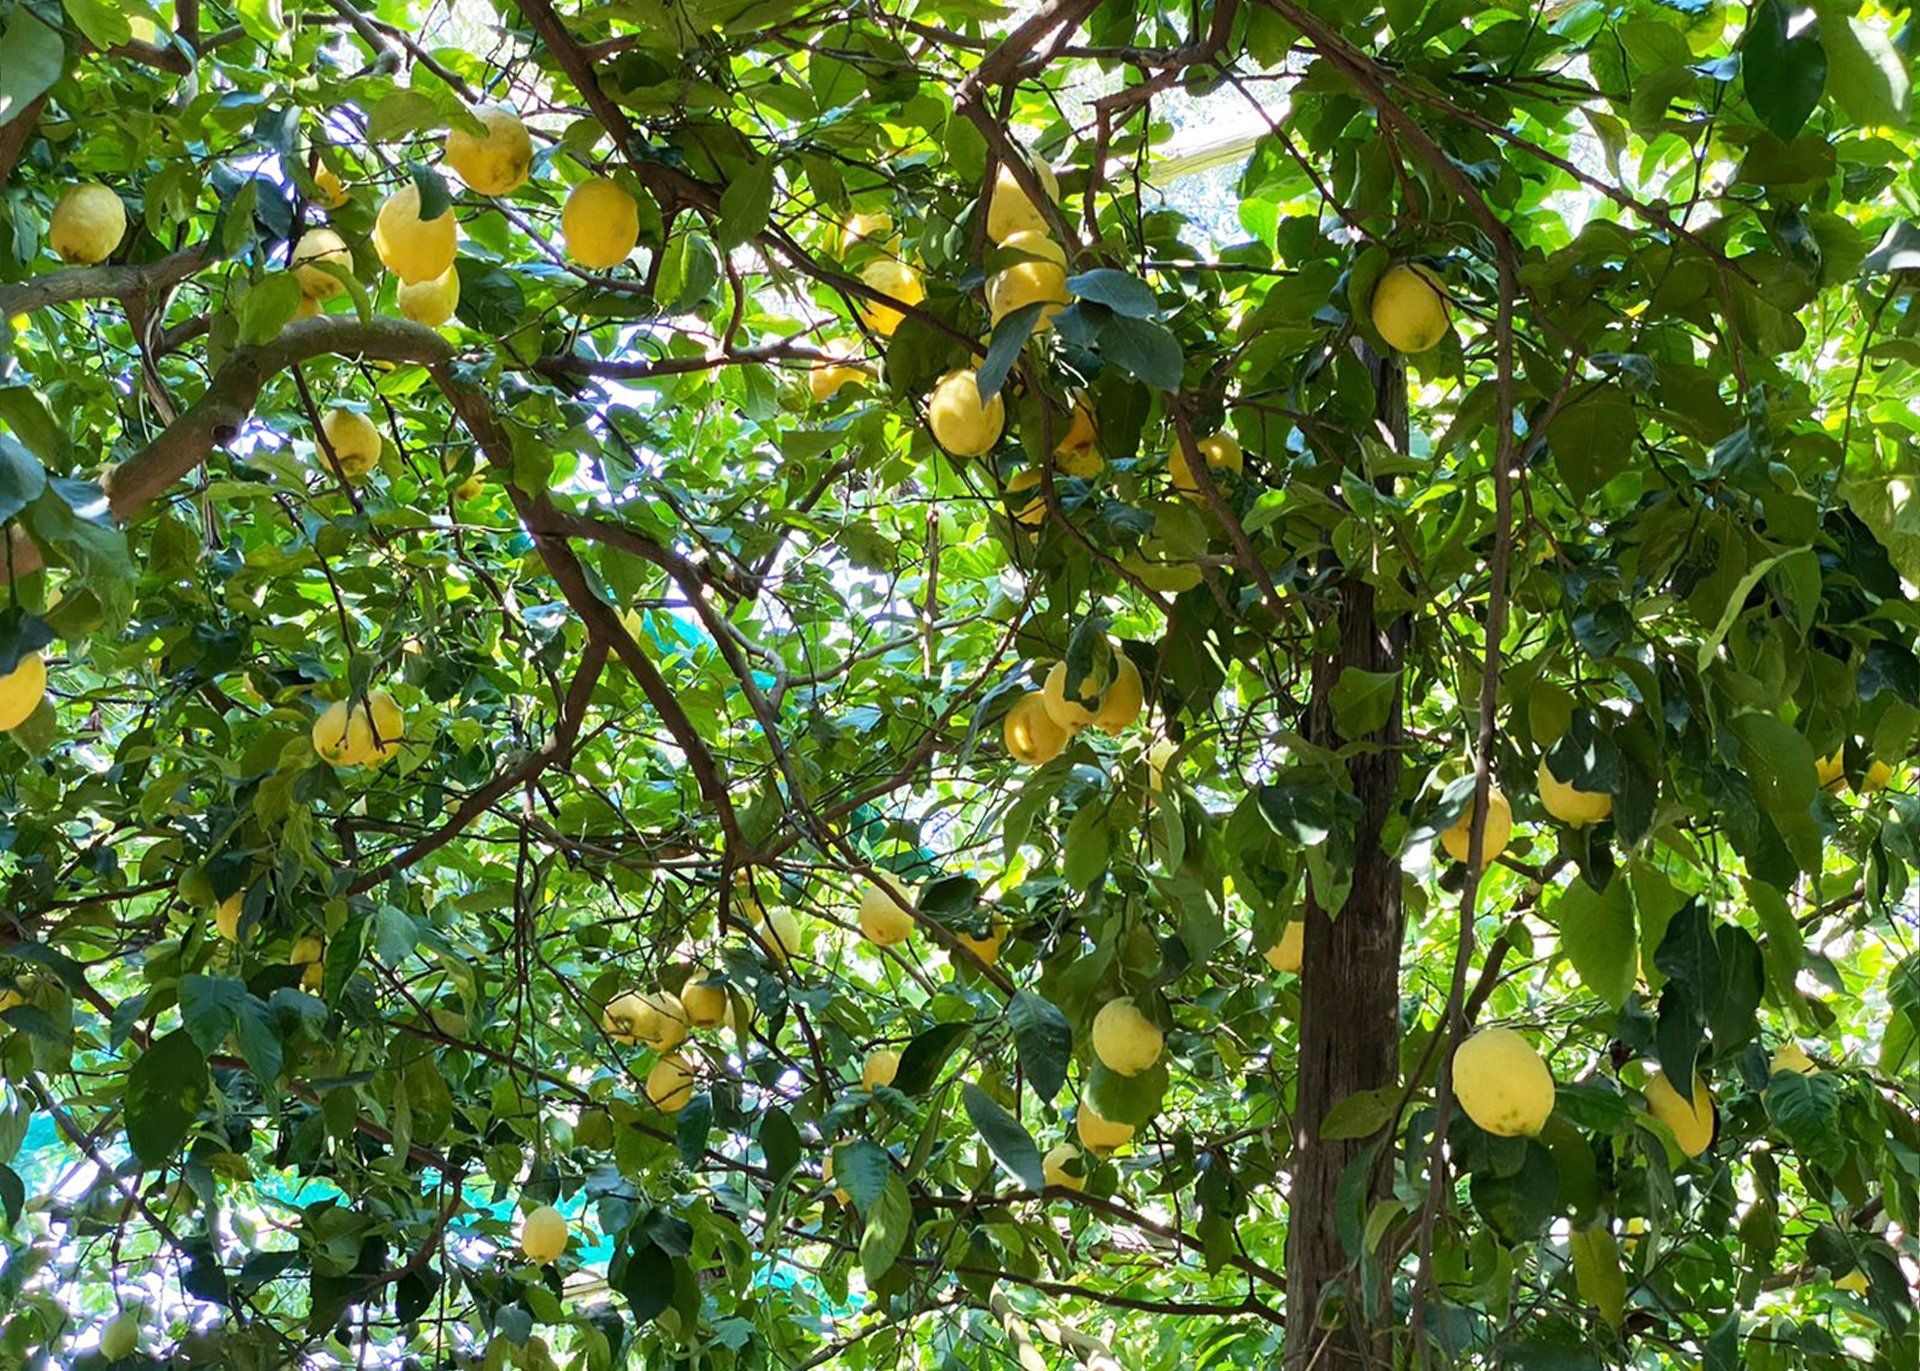 Sorrento Lemon Tour and Limoncello Tasting Experience